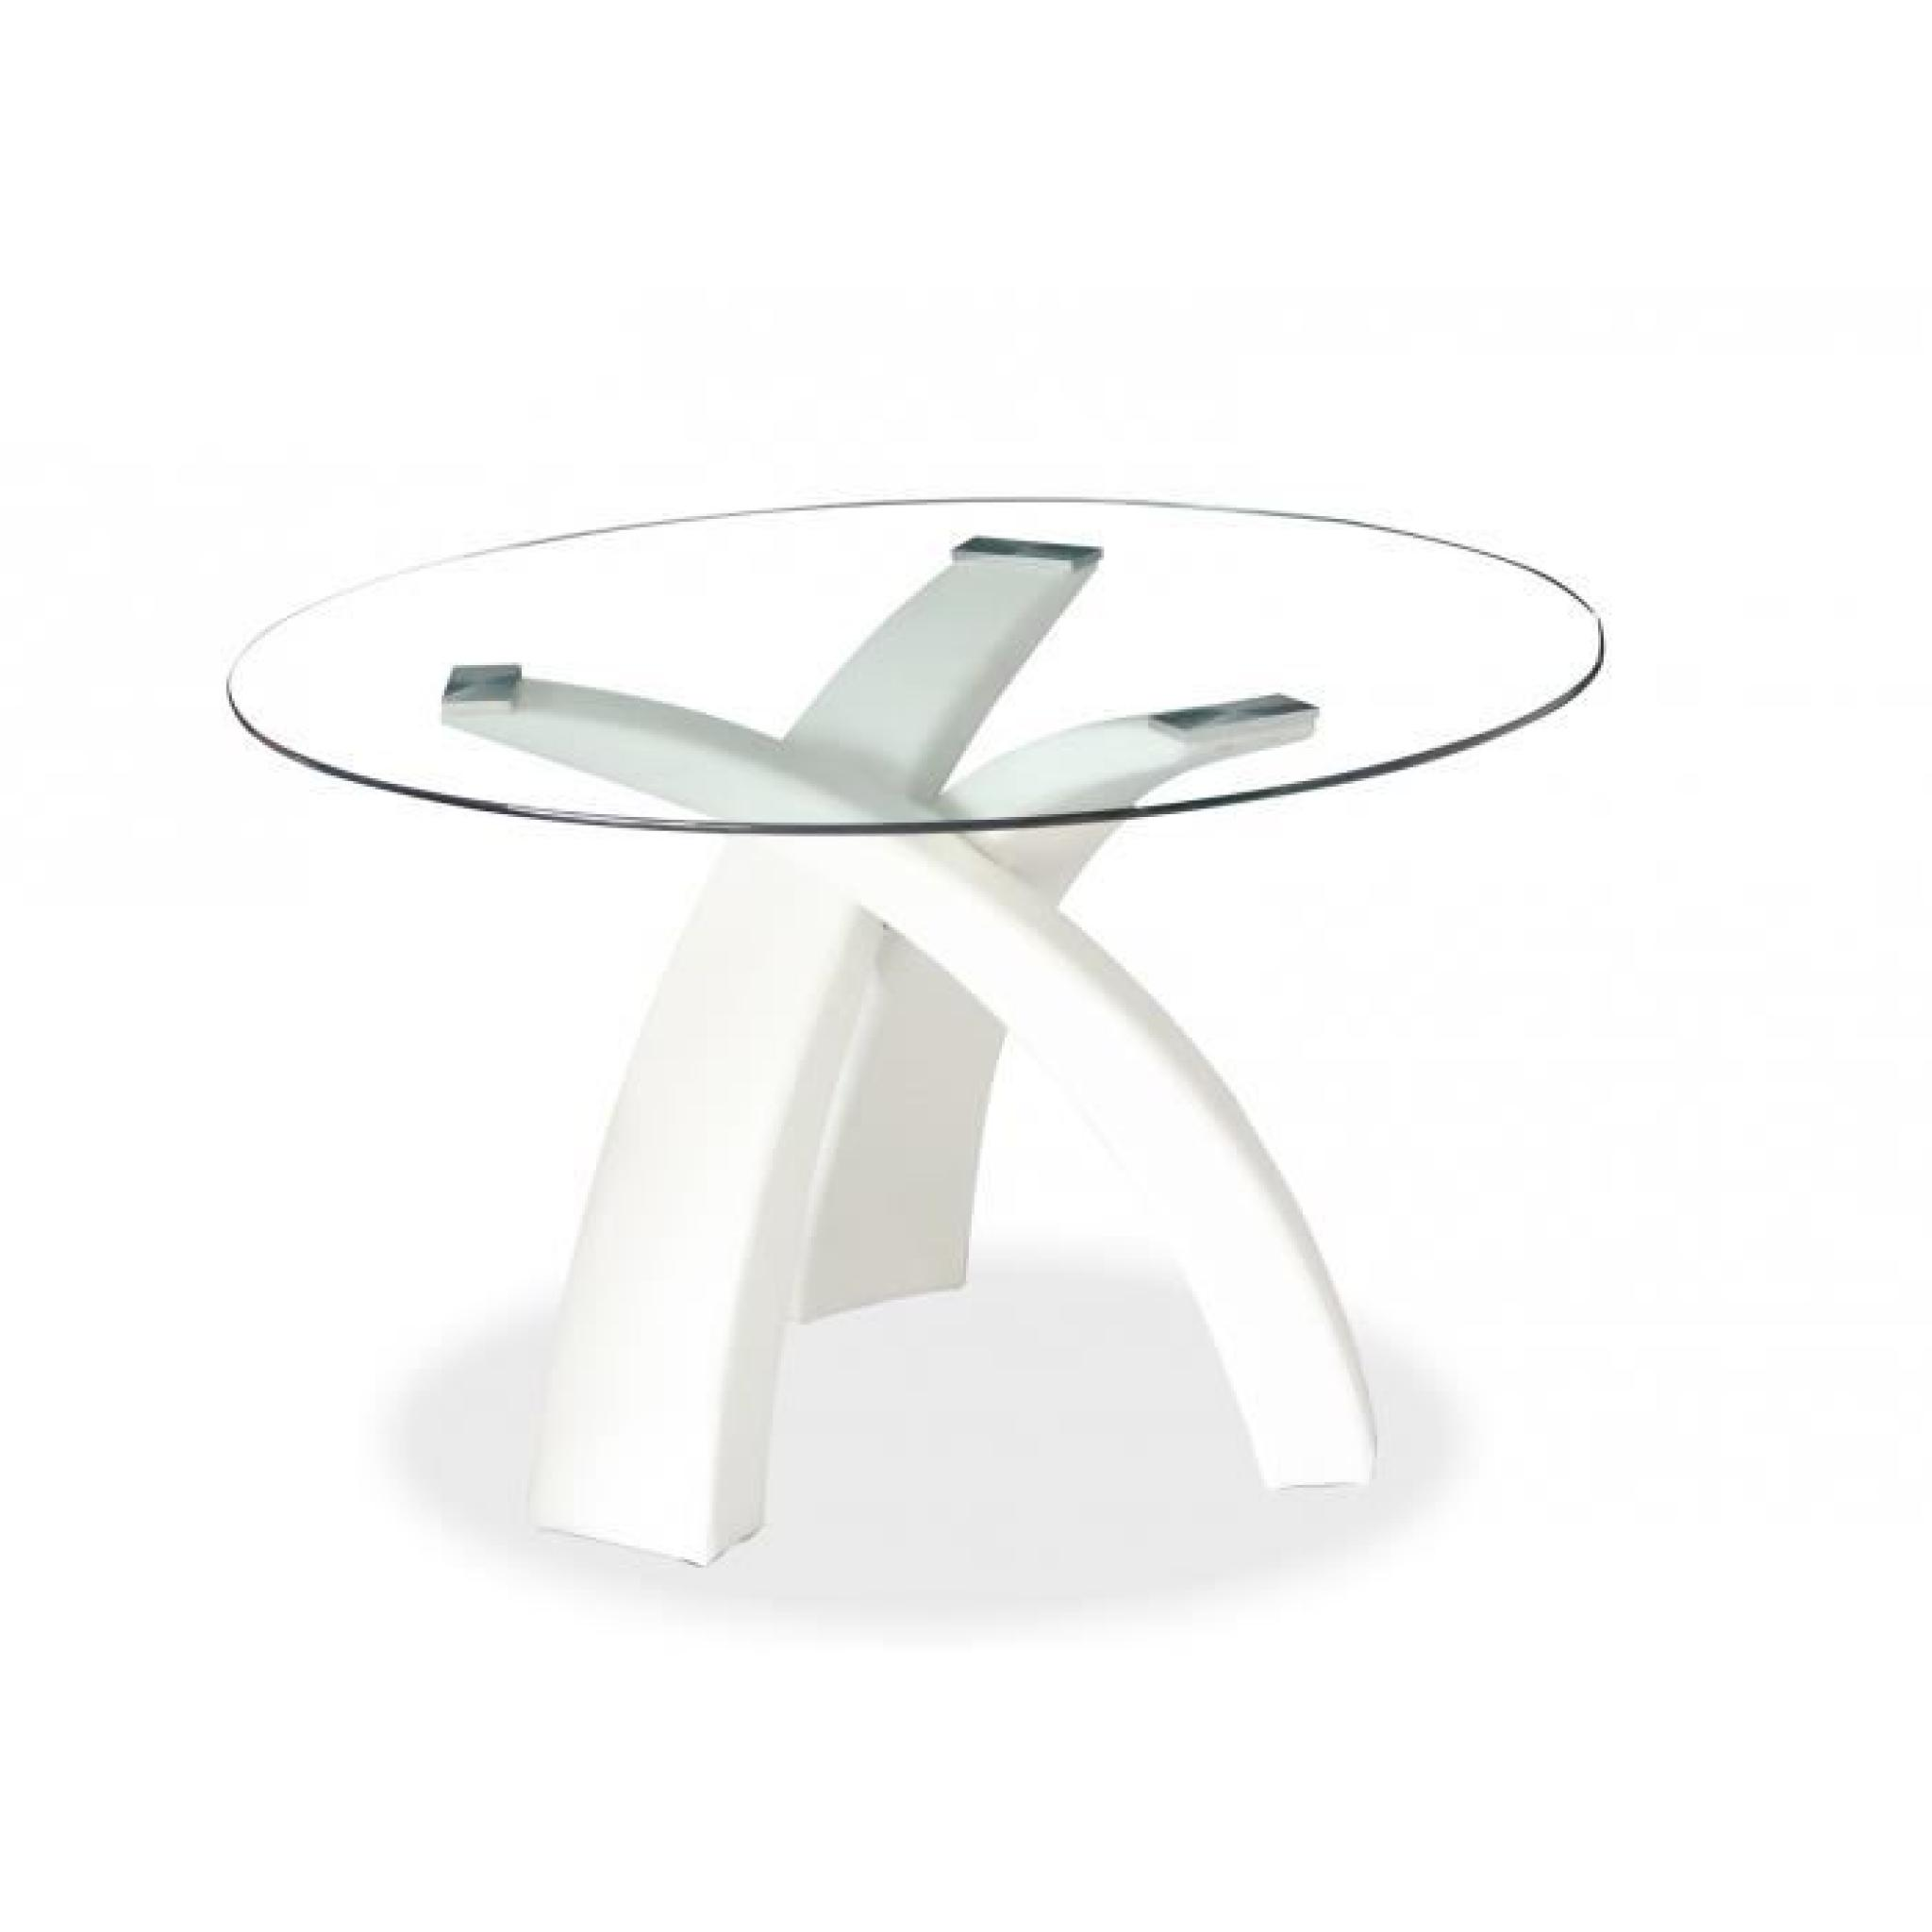 Table manger ronde blanche gore achat vente table for Salle a manger design table ronde